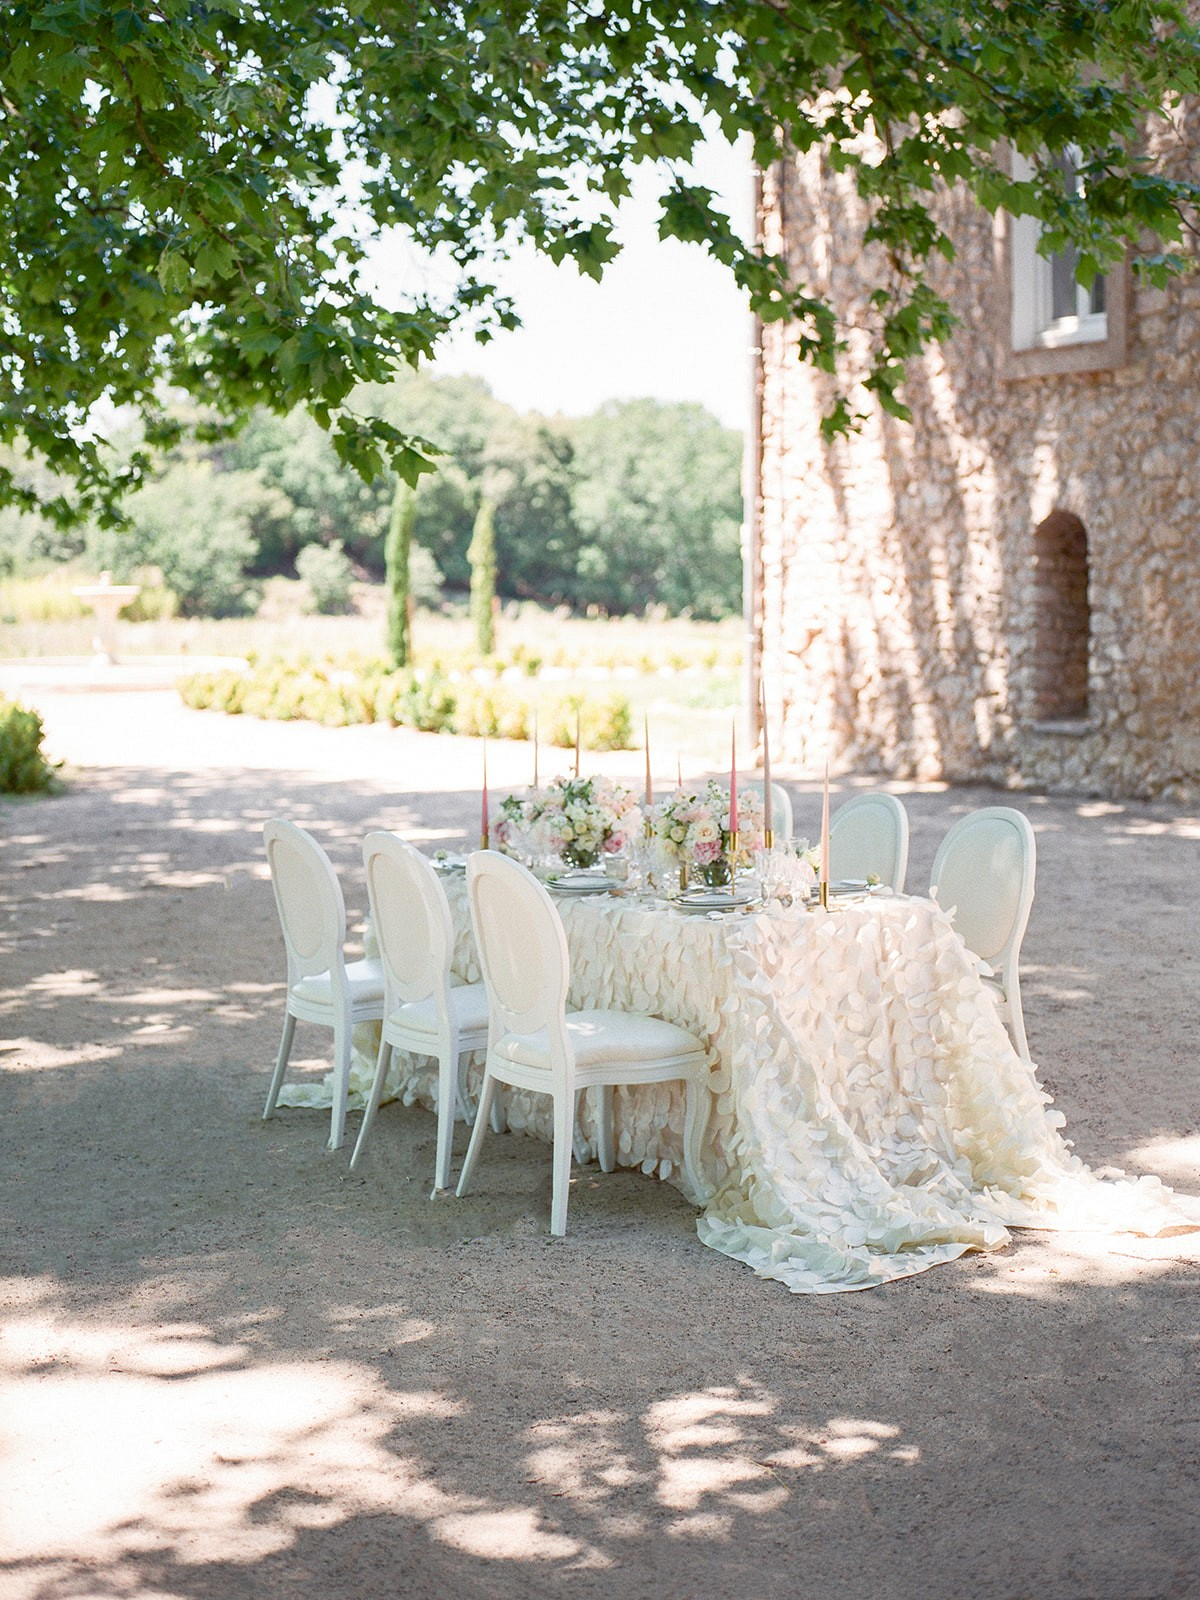 Elopement in Provence to Inspire Brides Thinking of a Micro Wedding